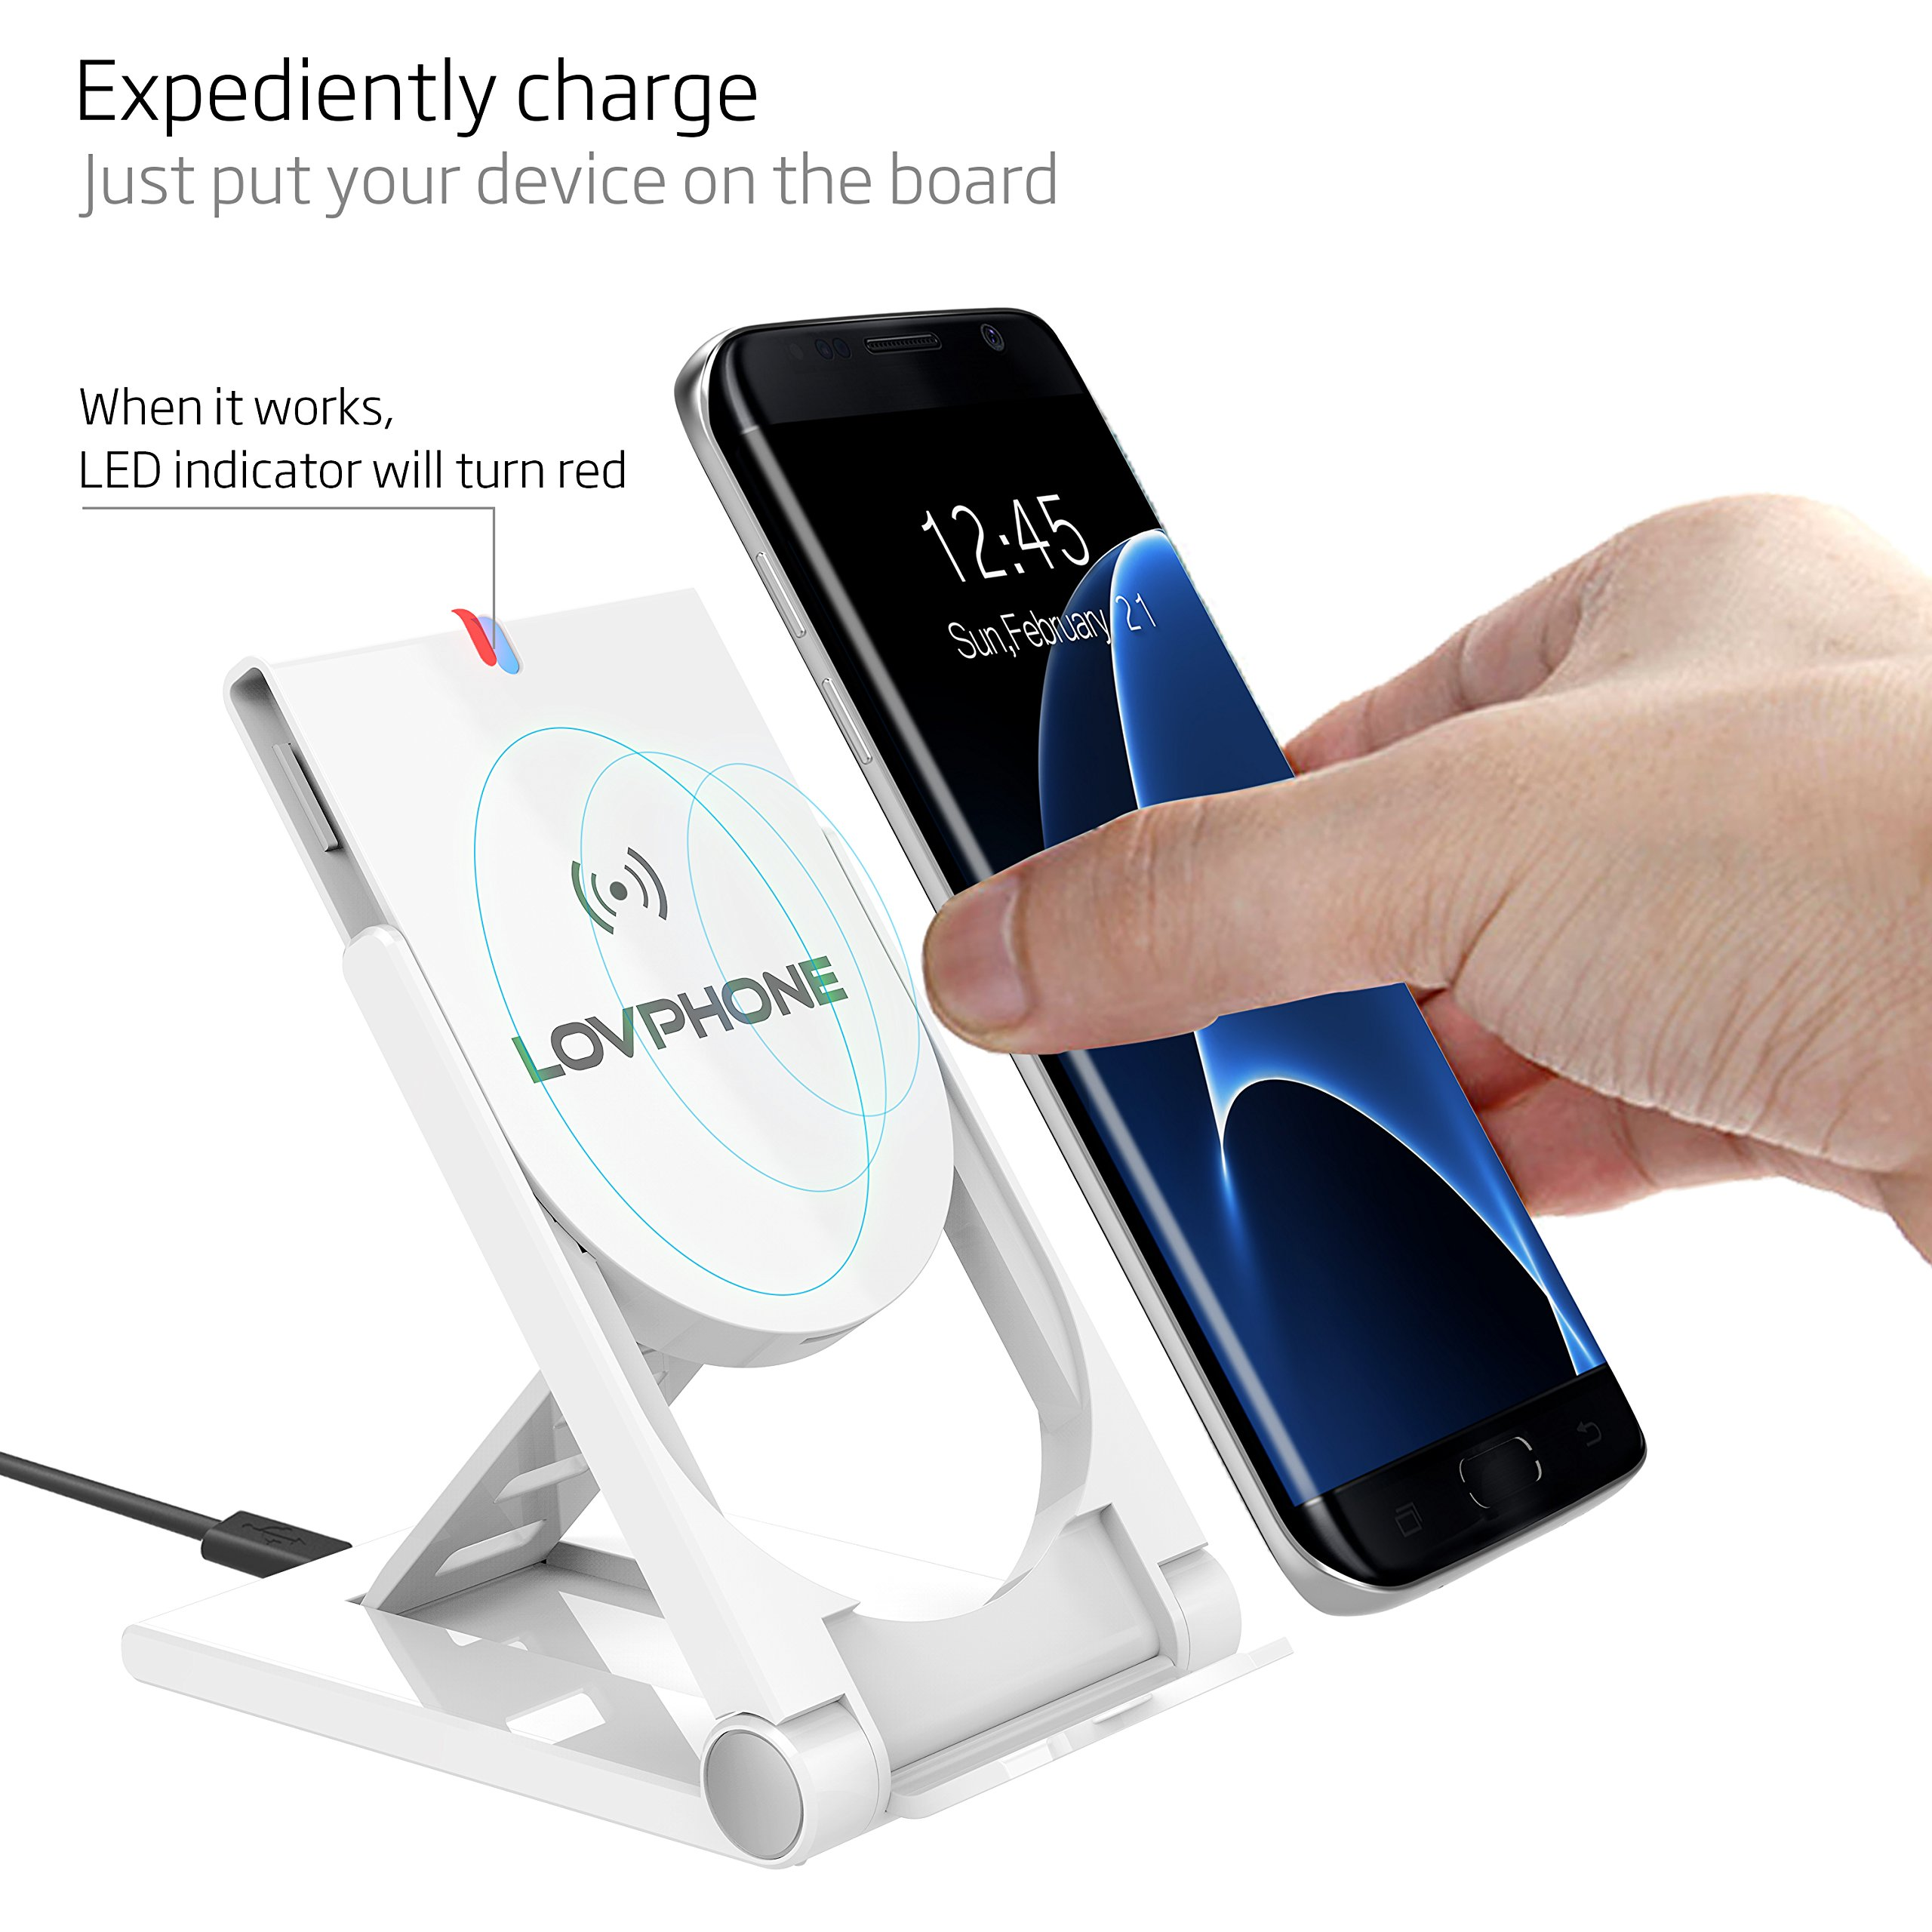 Wireless Charger-LOVPHONE QI Wireless Charging Stand Pad Quick Charge for Samsung Galaxy S7, S7 Edge, Galaxy S6, ,S6 Edge ,S6 Edge Plus,Note 5, (AC Adapter Not Included) (White)